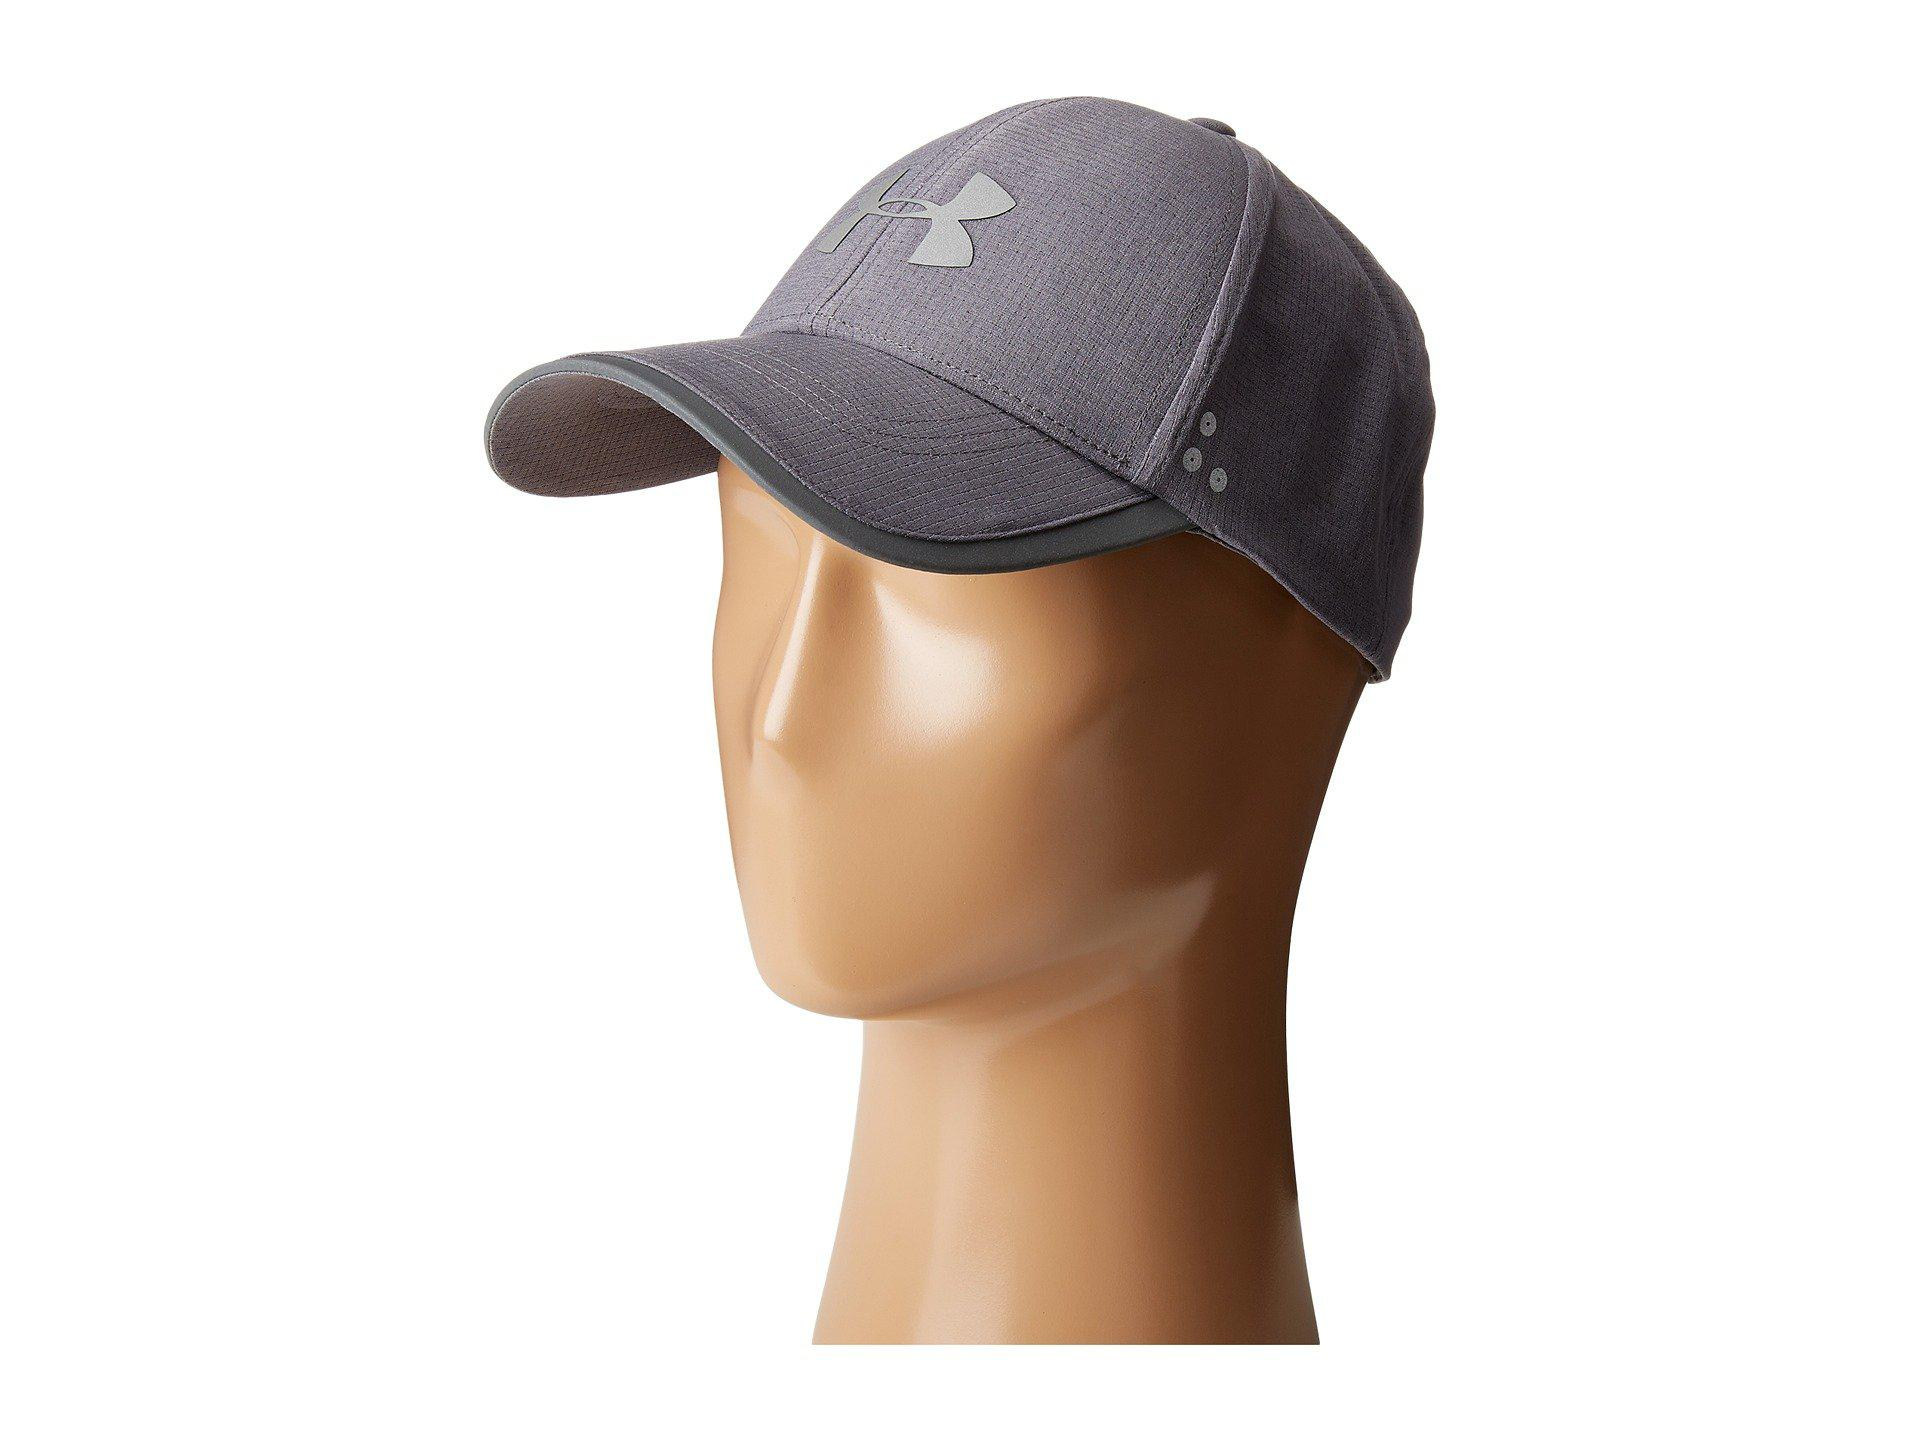 finest selection 1ee45 cffec italy under armour flash 1 panel cap 7b258 0ca04  buy lyst under armour ua  flash 2.0 cap for men a22f8 95603